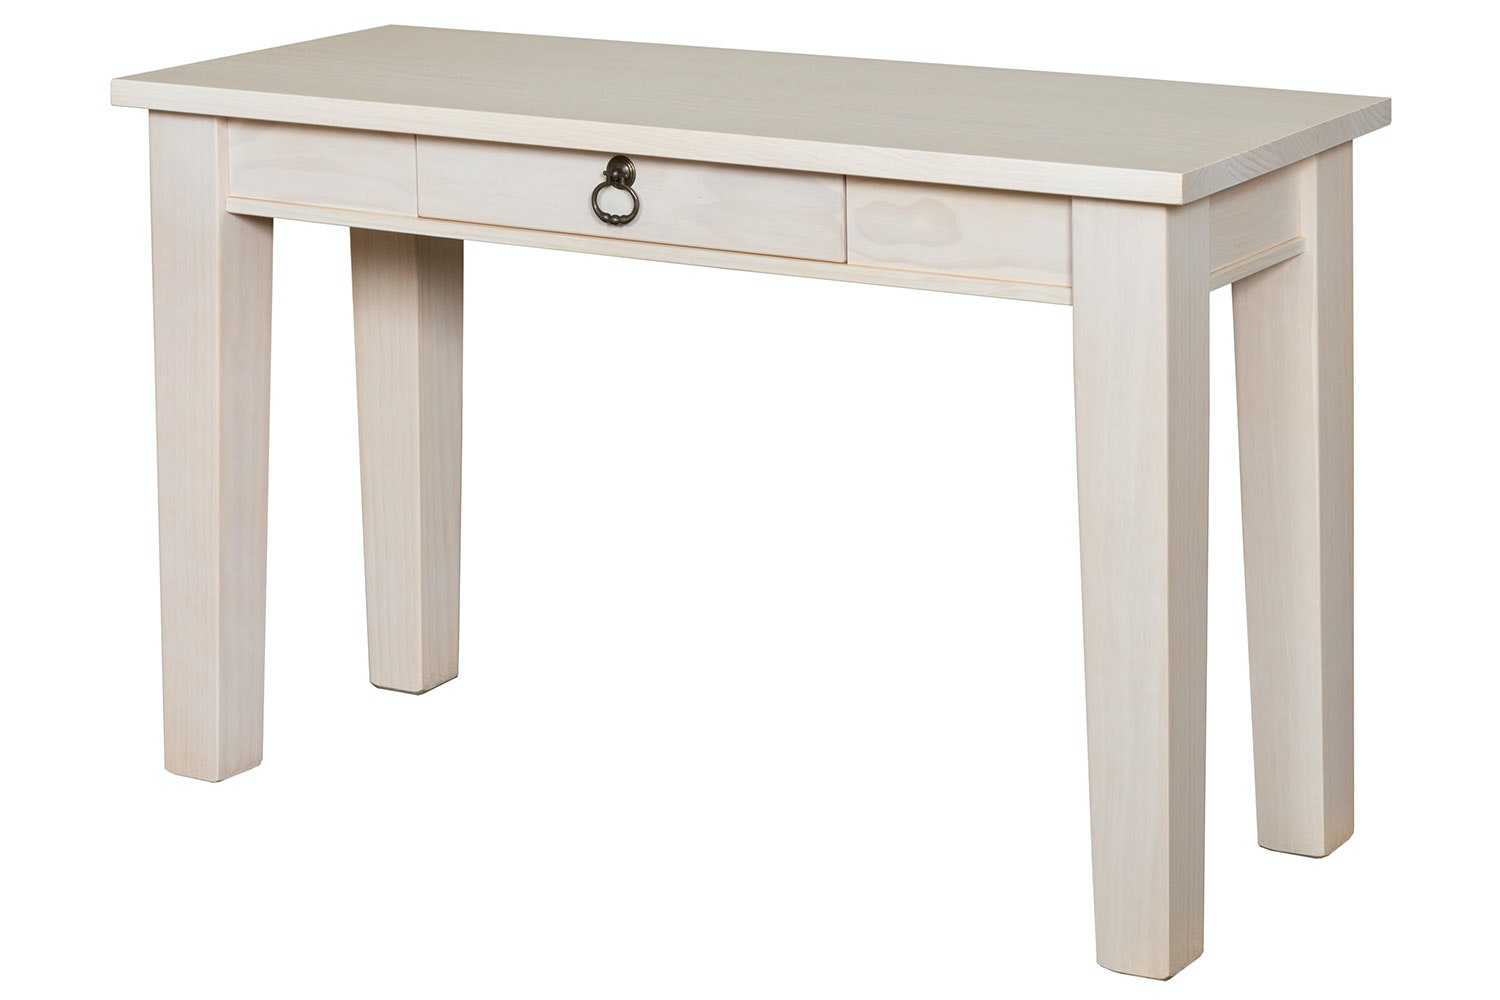 Ferngrove Hall Table with Drawer by Coastwood Furniture